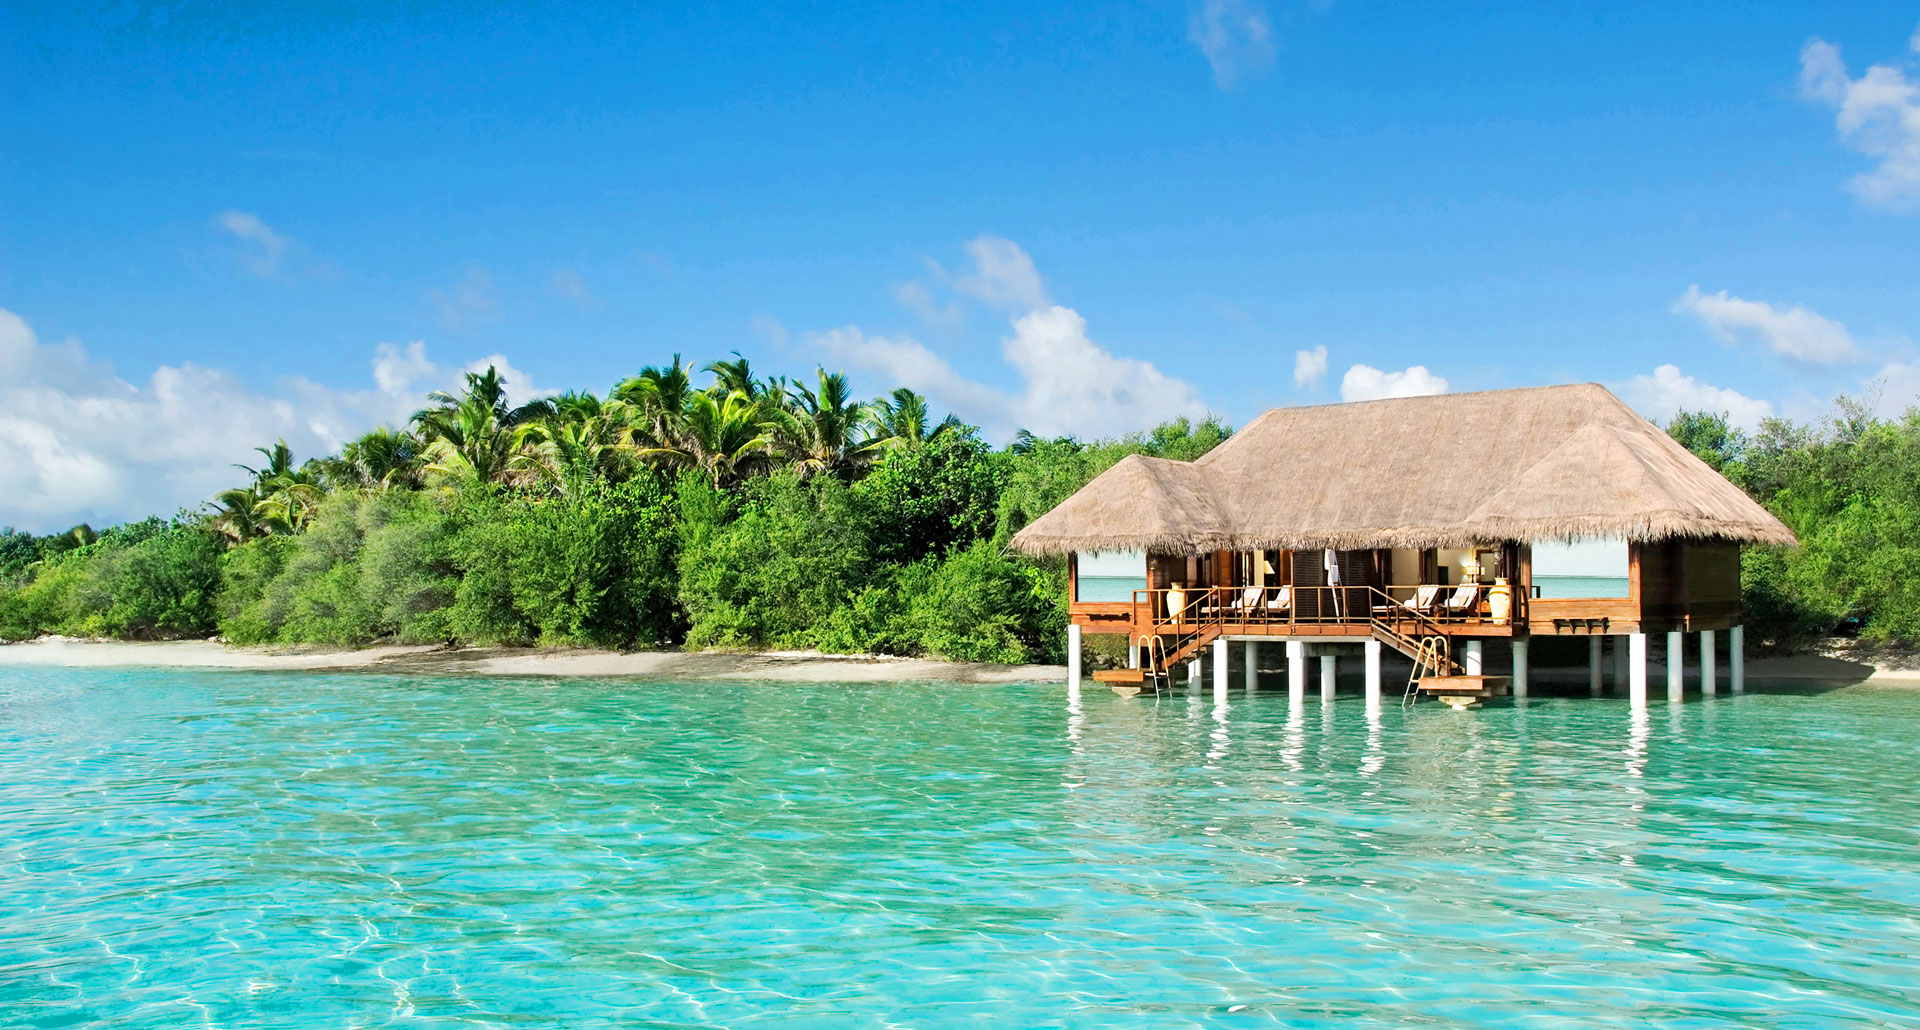 Taj Exotica Resort and Spa - boutique hotel in The Maldives